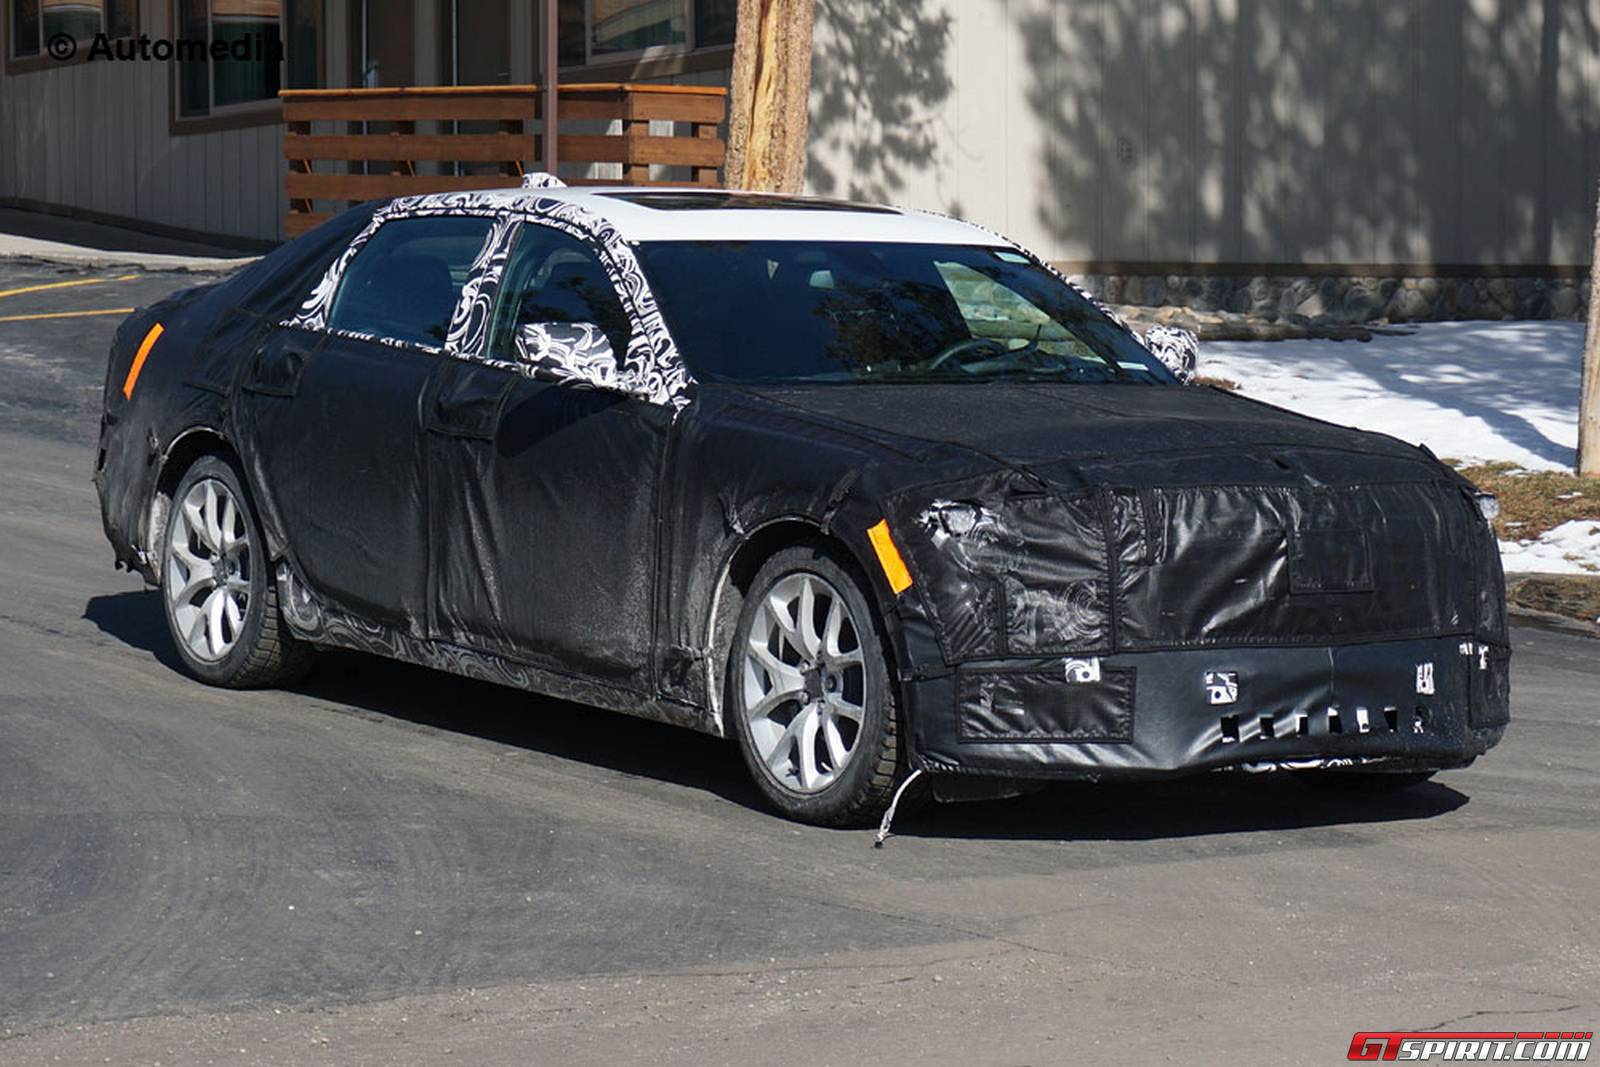 2016 cadillac ct6 spy shots emerge ahead of global debut gtspirit. Black Bedroom Furniture Sets. Home Design Ideas